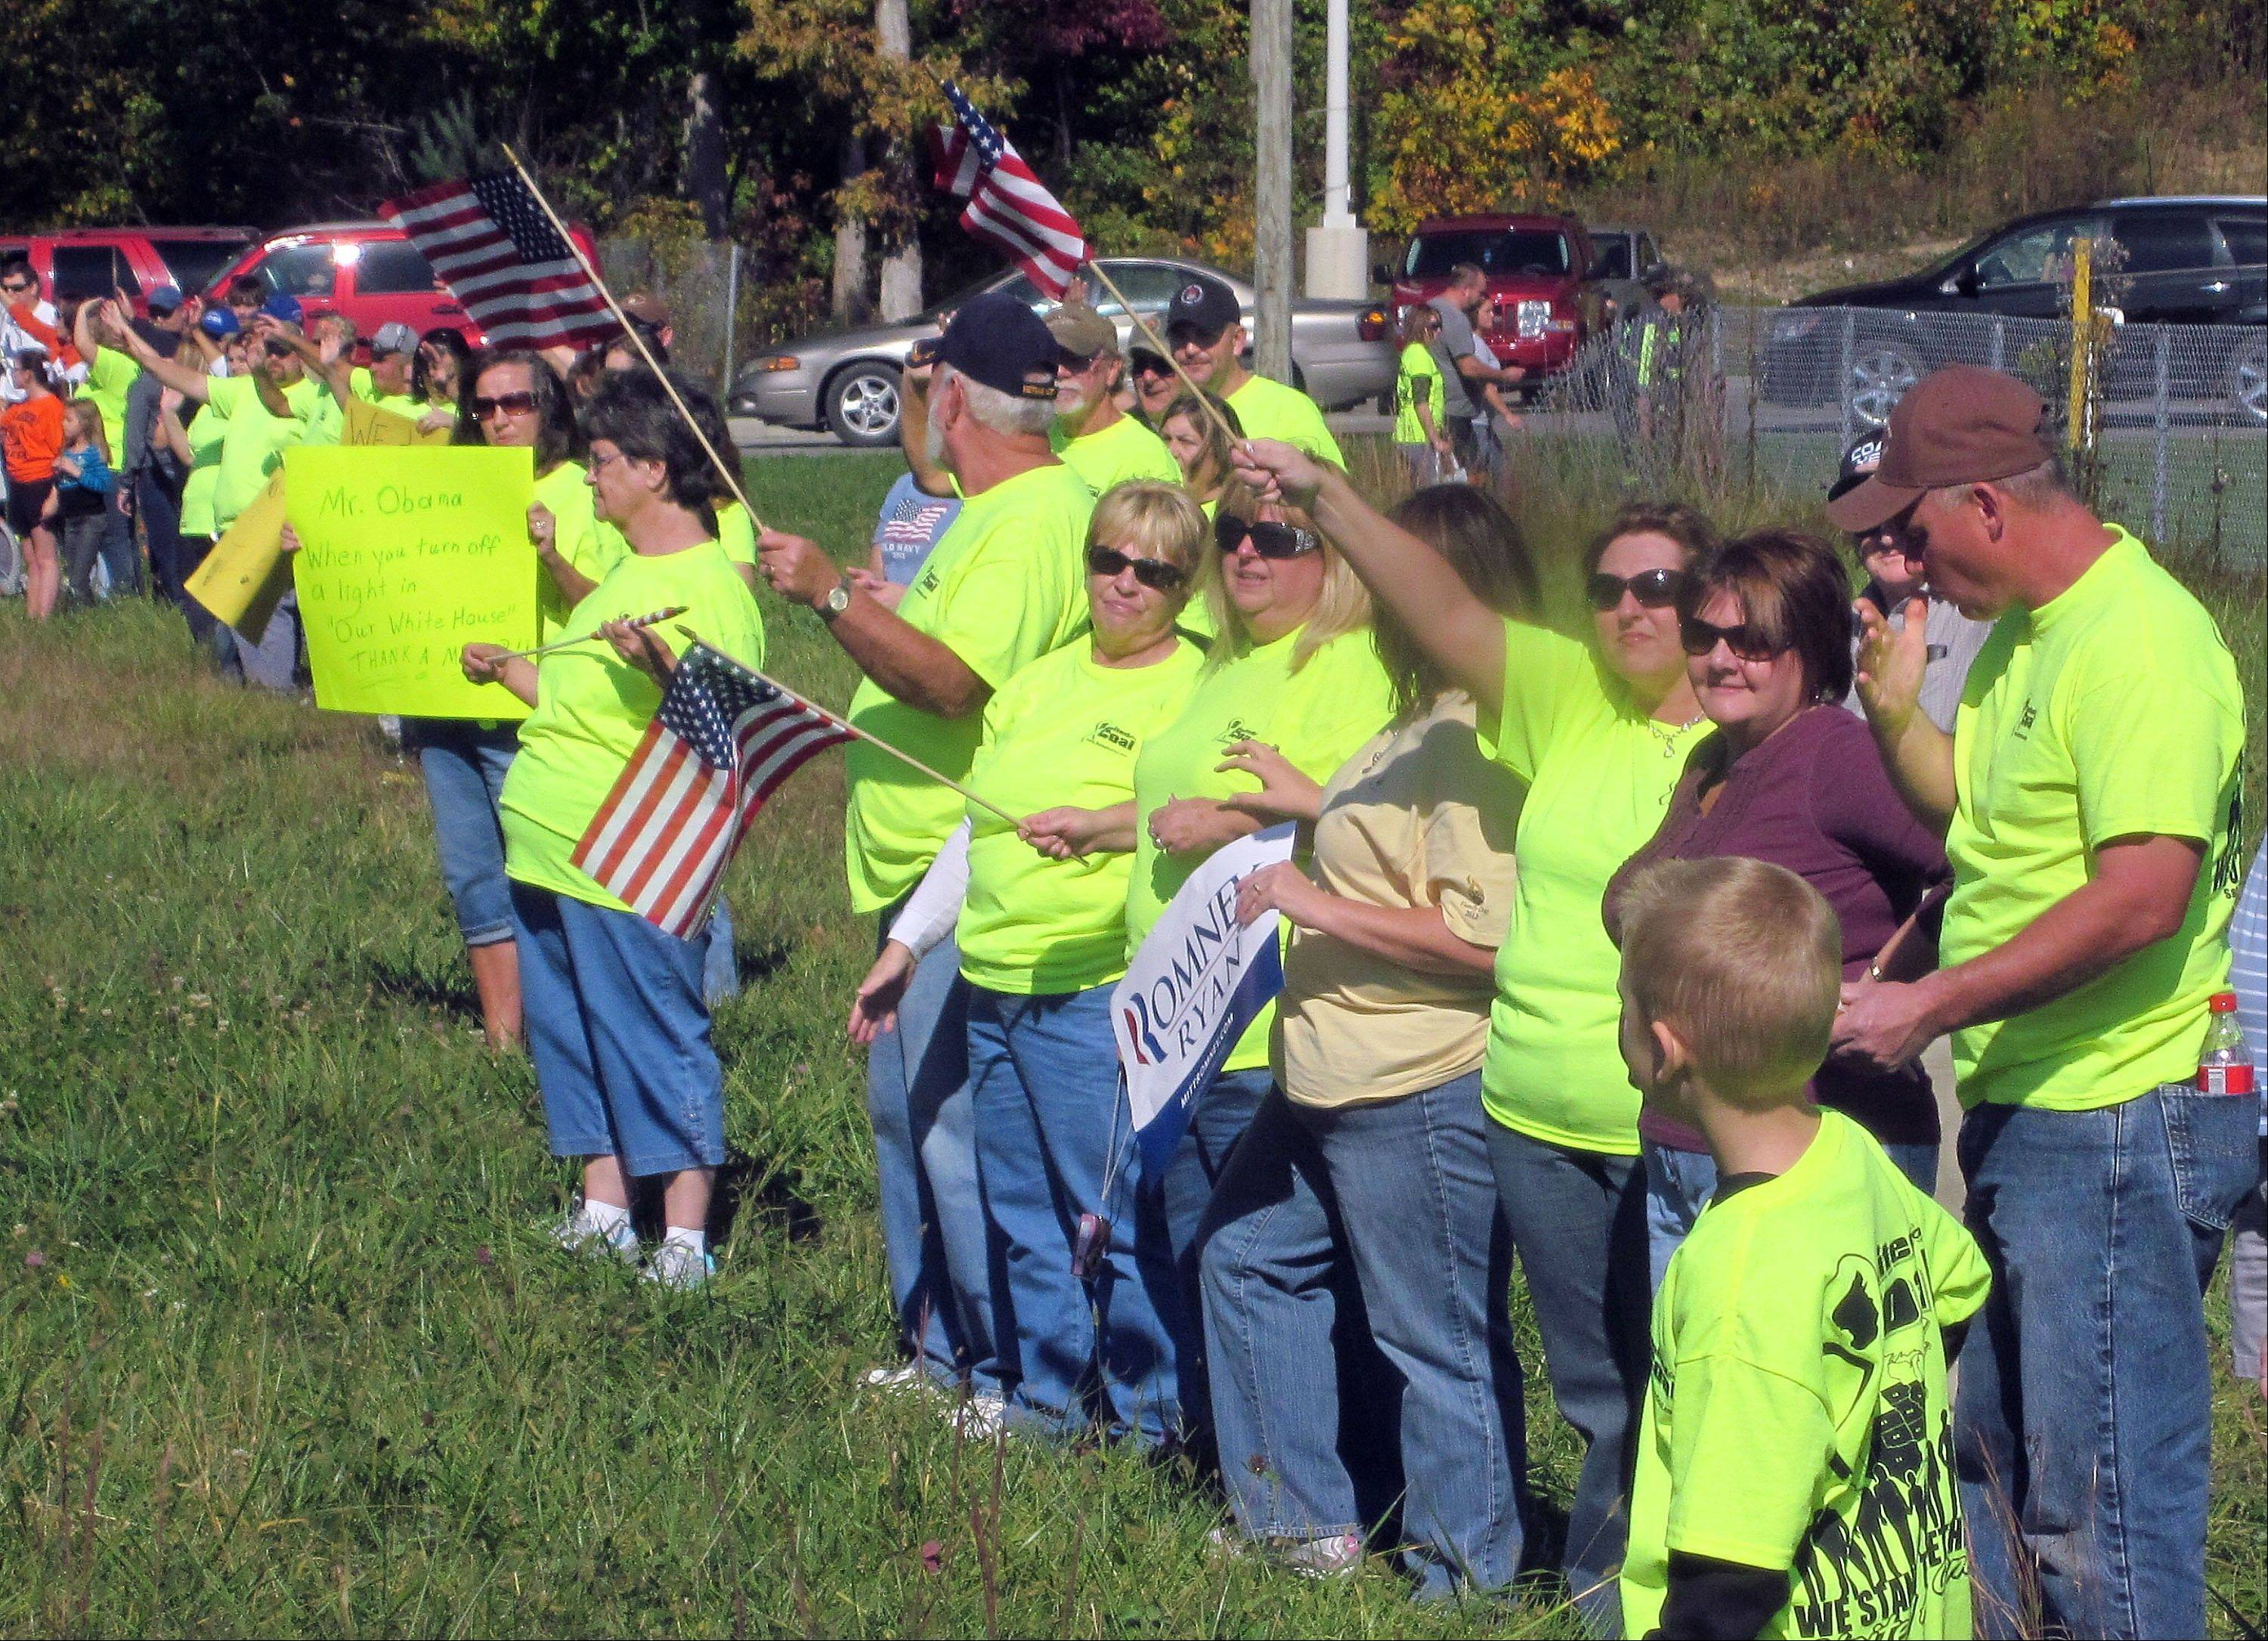 Hundreds congregated along U.S. 23 last Saturday, Oct. 13, from Big Stone Gap to Pound and into Kentucky in support of coal miners and the mining industry.